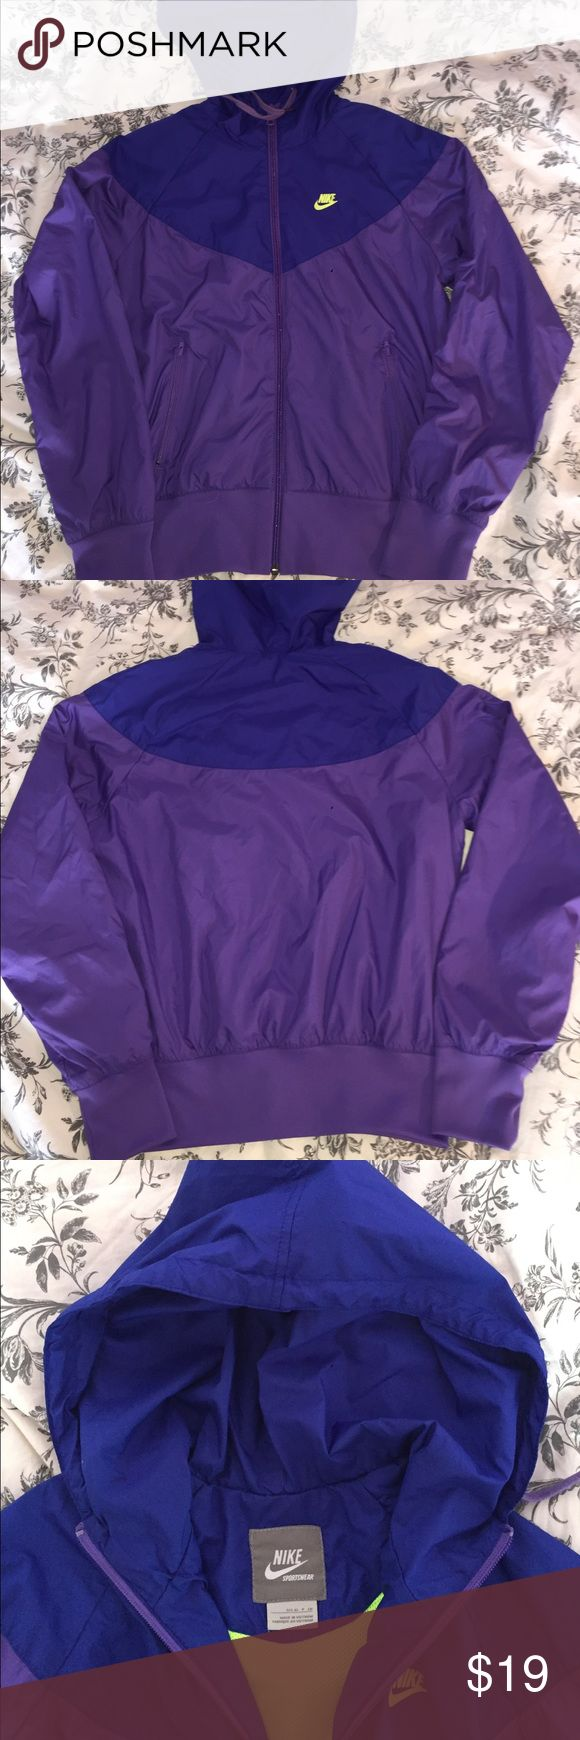 Purple, blue, and bolt Nike windrunner From Nike running. Hardly worn, like new. The black dot is on my camera lens. Nike Jackets & Coats